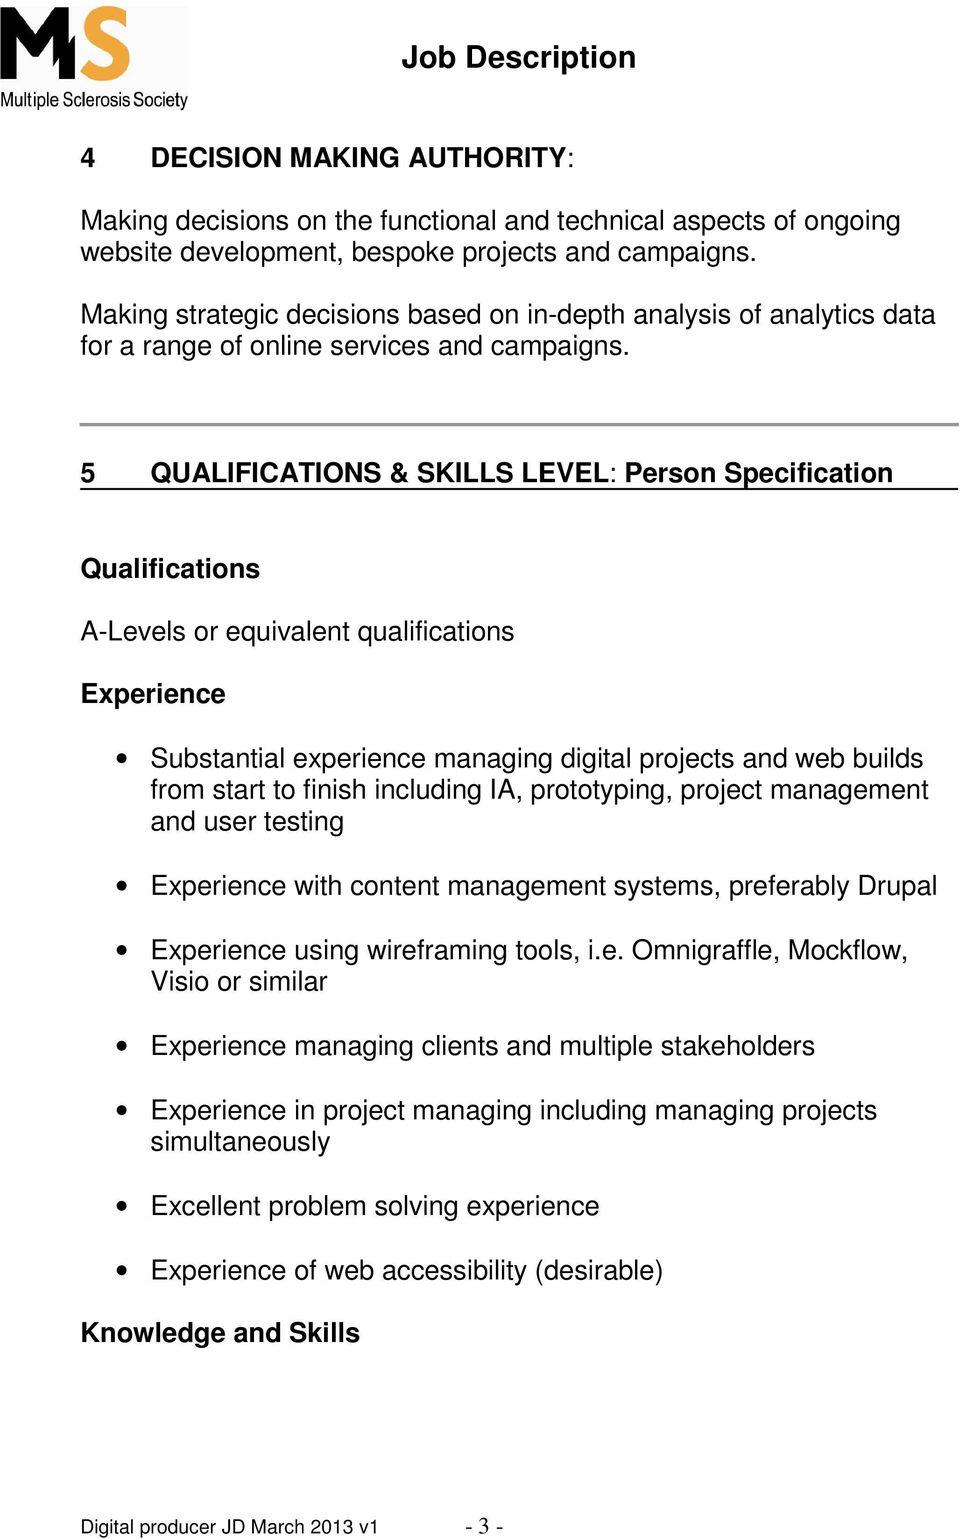 5 QUALIFICATIONS & SKILLS LEVEL: Person Specification Qualifications A-Levels or equivalent qualifications Experience Substantial experience managing digital projects and web builds from start to